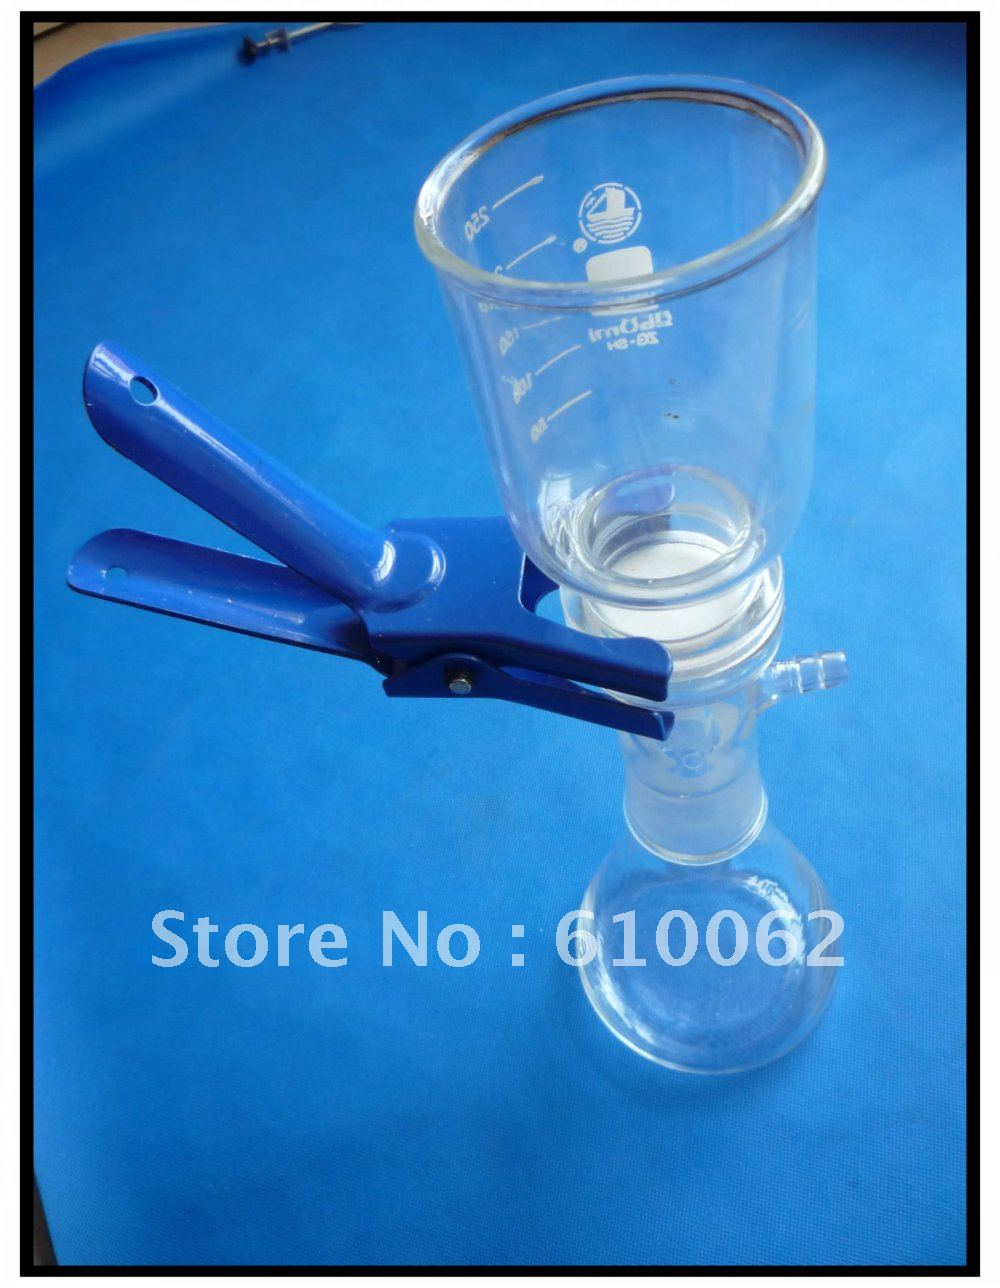 ФОТО Vacuum Suction Filter Device, Buchner Filting Apparatus, with filter flask 500ml